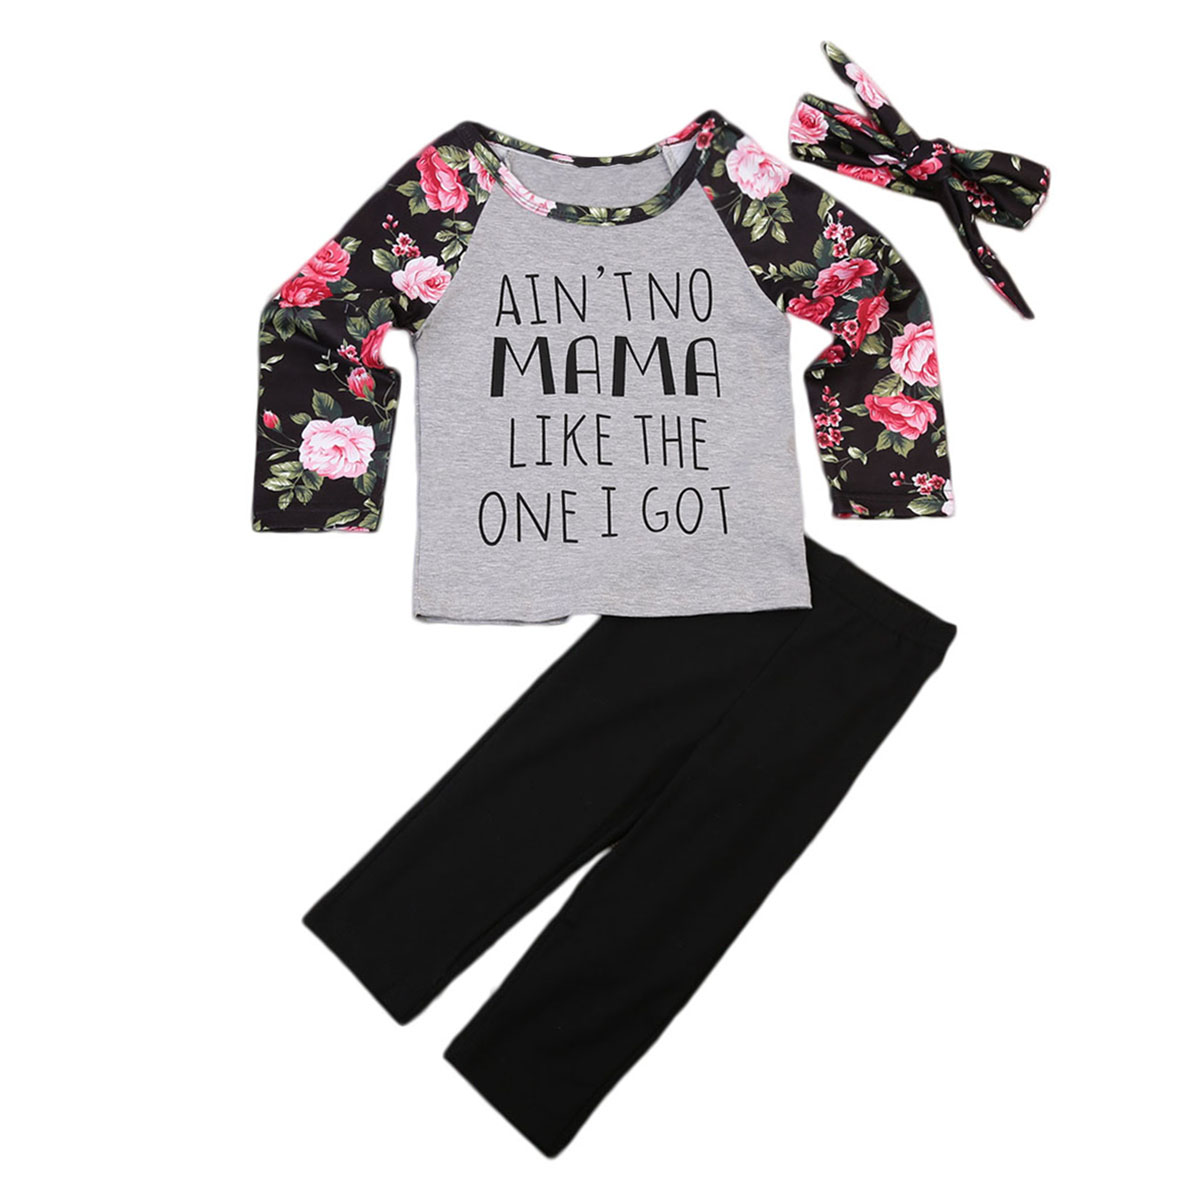 2017 New Brand Toddler Kids Baby Girls Outfit Floral Tops Long Sleeve T-shirt Pants Hairband 3PCS Casual Autumn Clothes 1-6T mother daughter coffee color trumpet sleeve long t shirt family clothes toddler girls autumn o neck tops mom son fashion t shirt